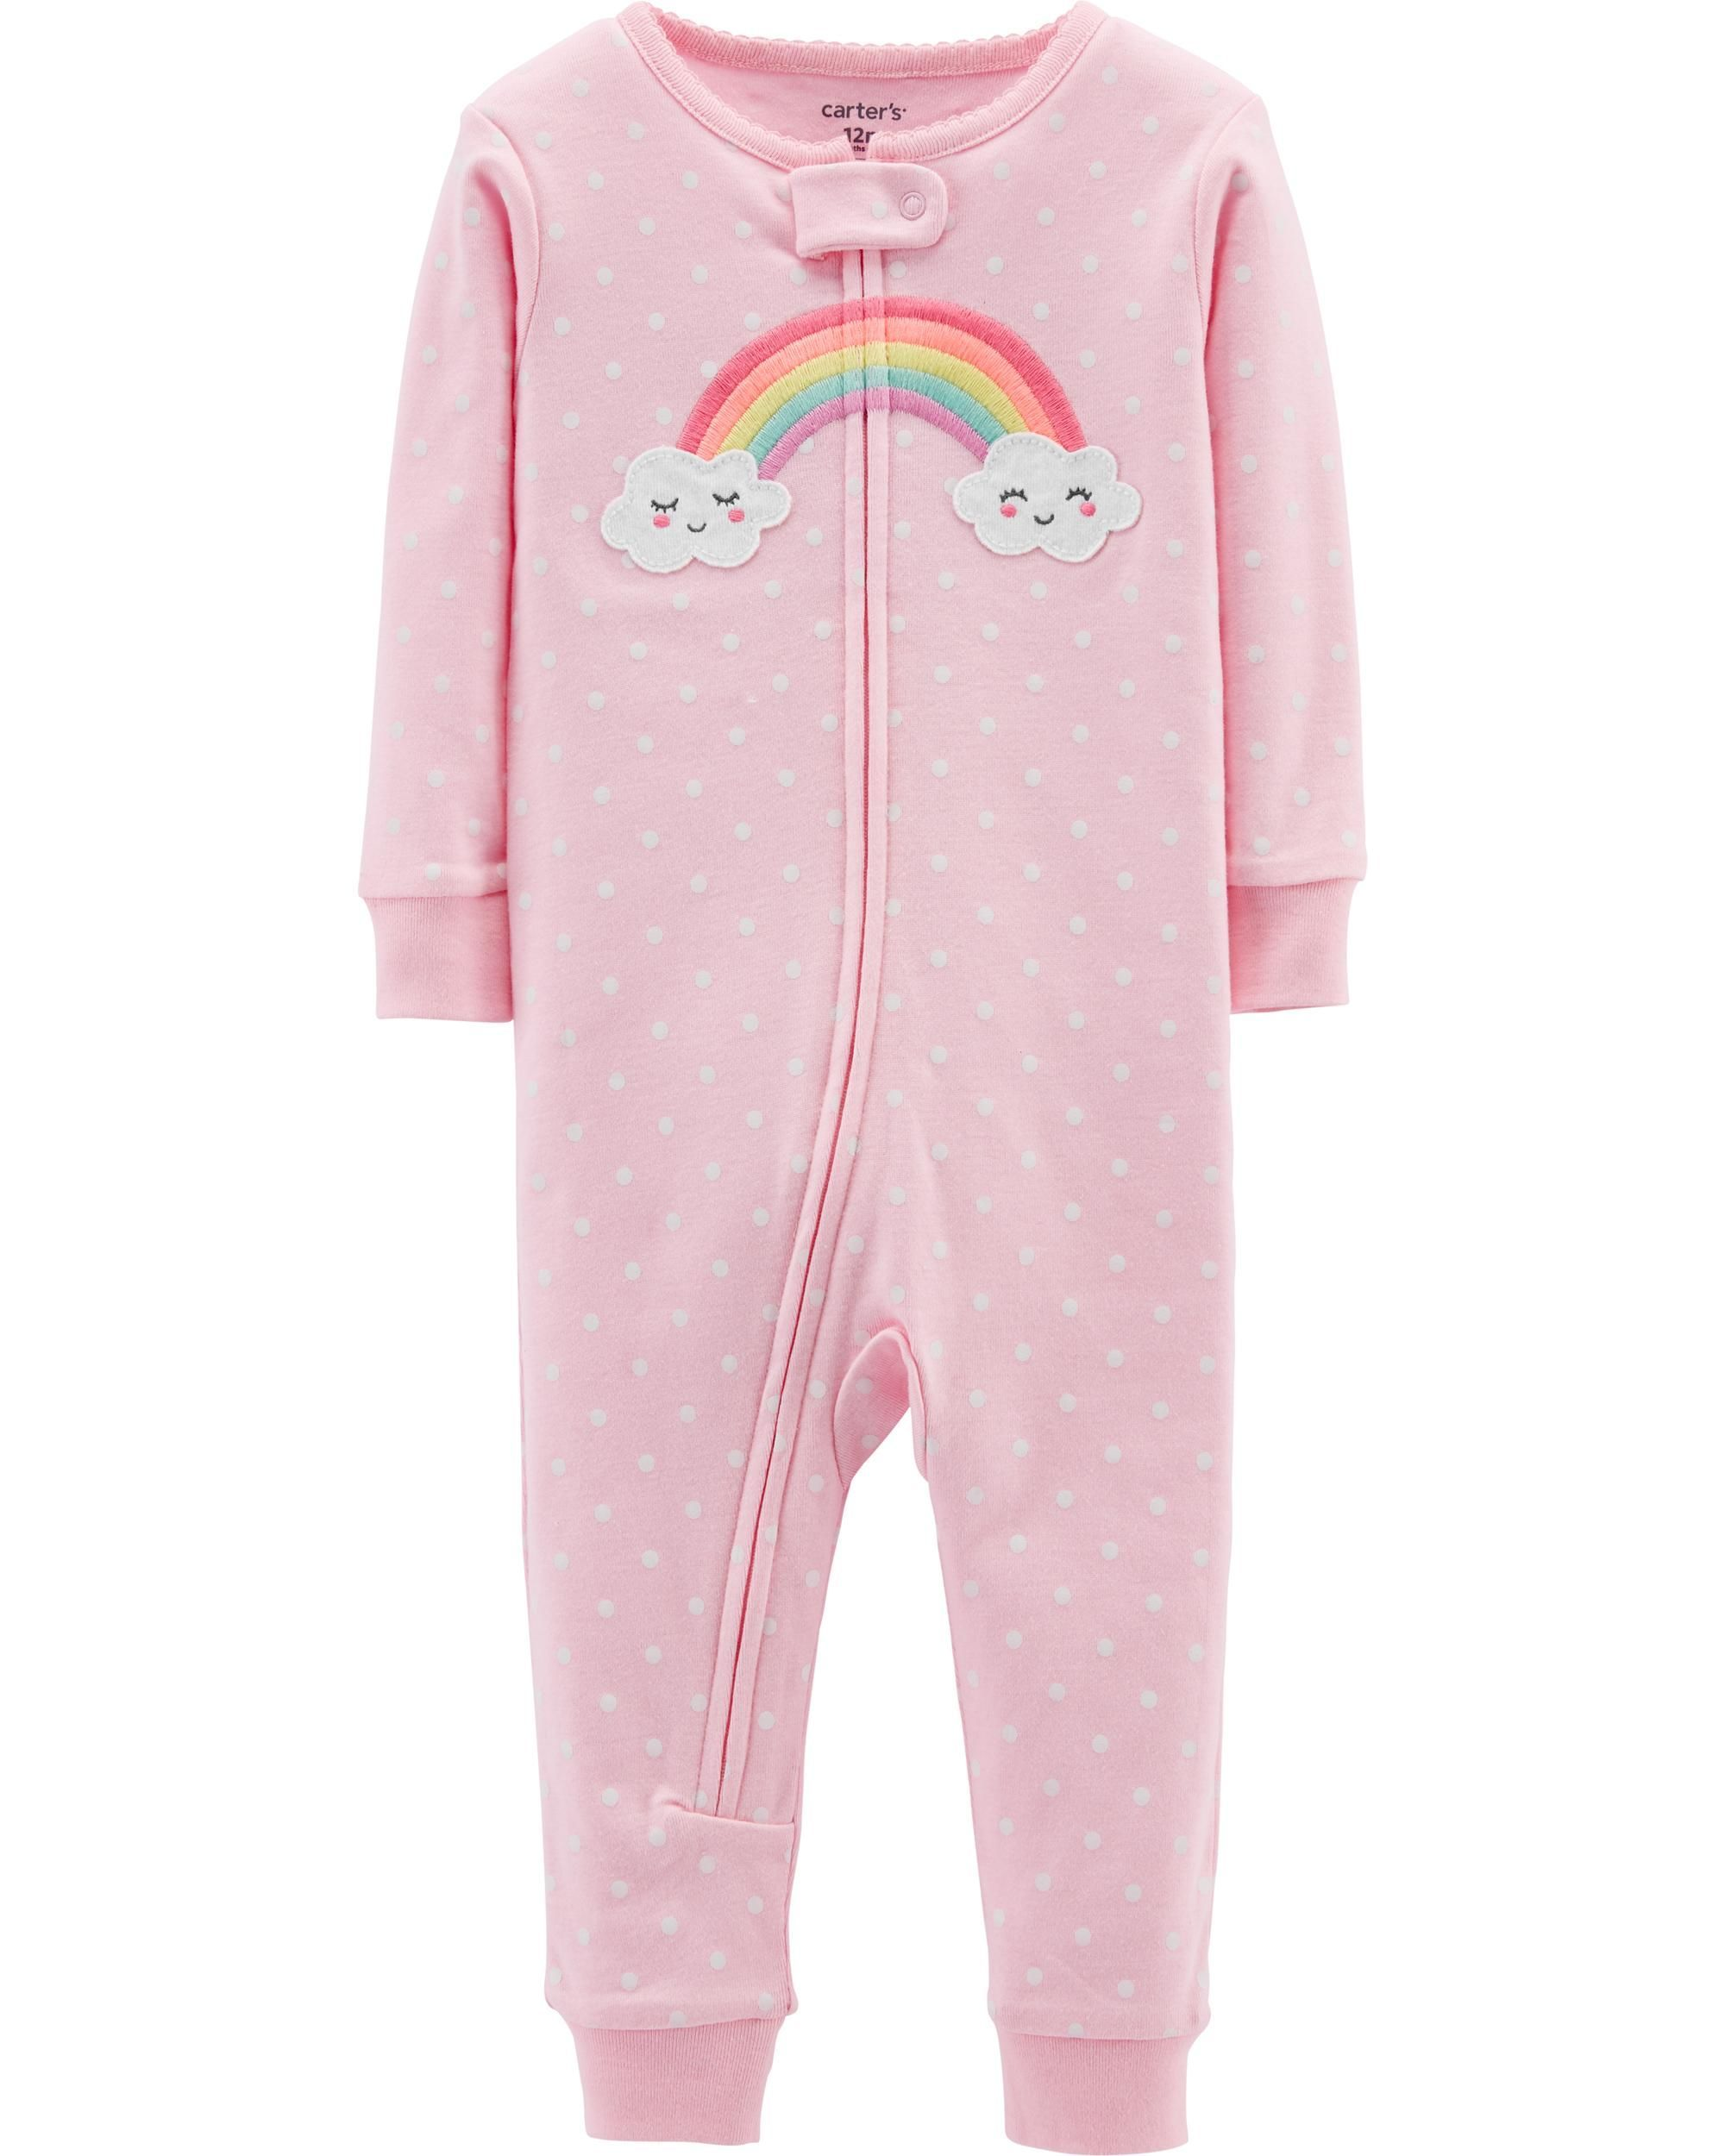 ef0aa56d9 1-Piece Rainbow Snug Fit Cotton Footless PJs